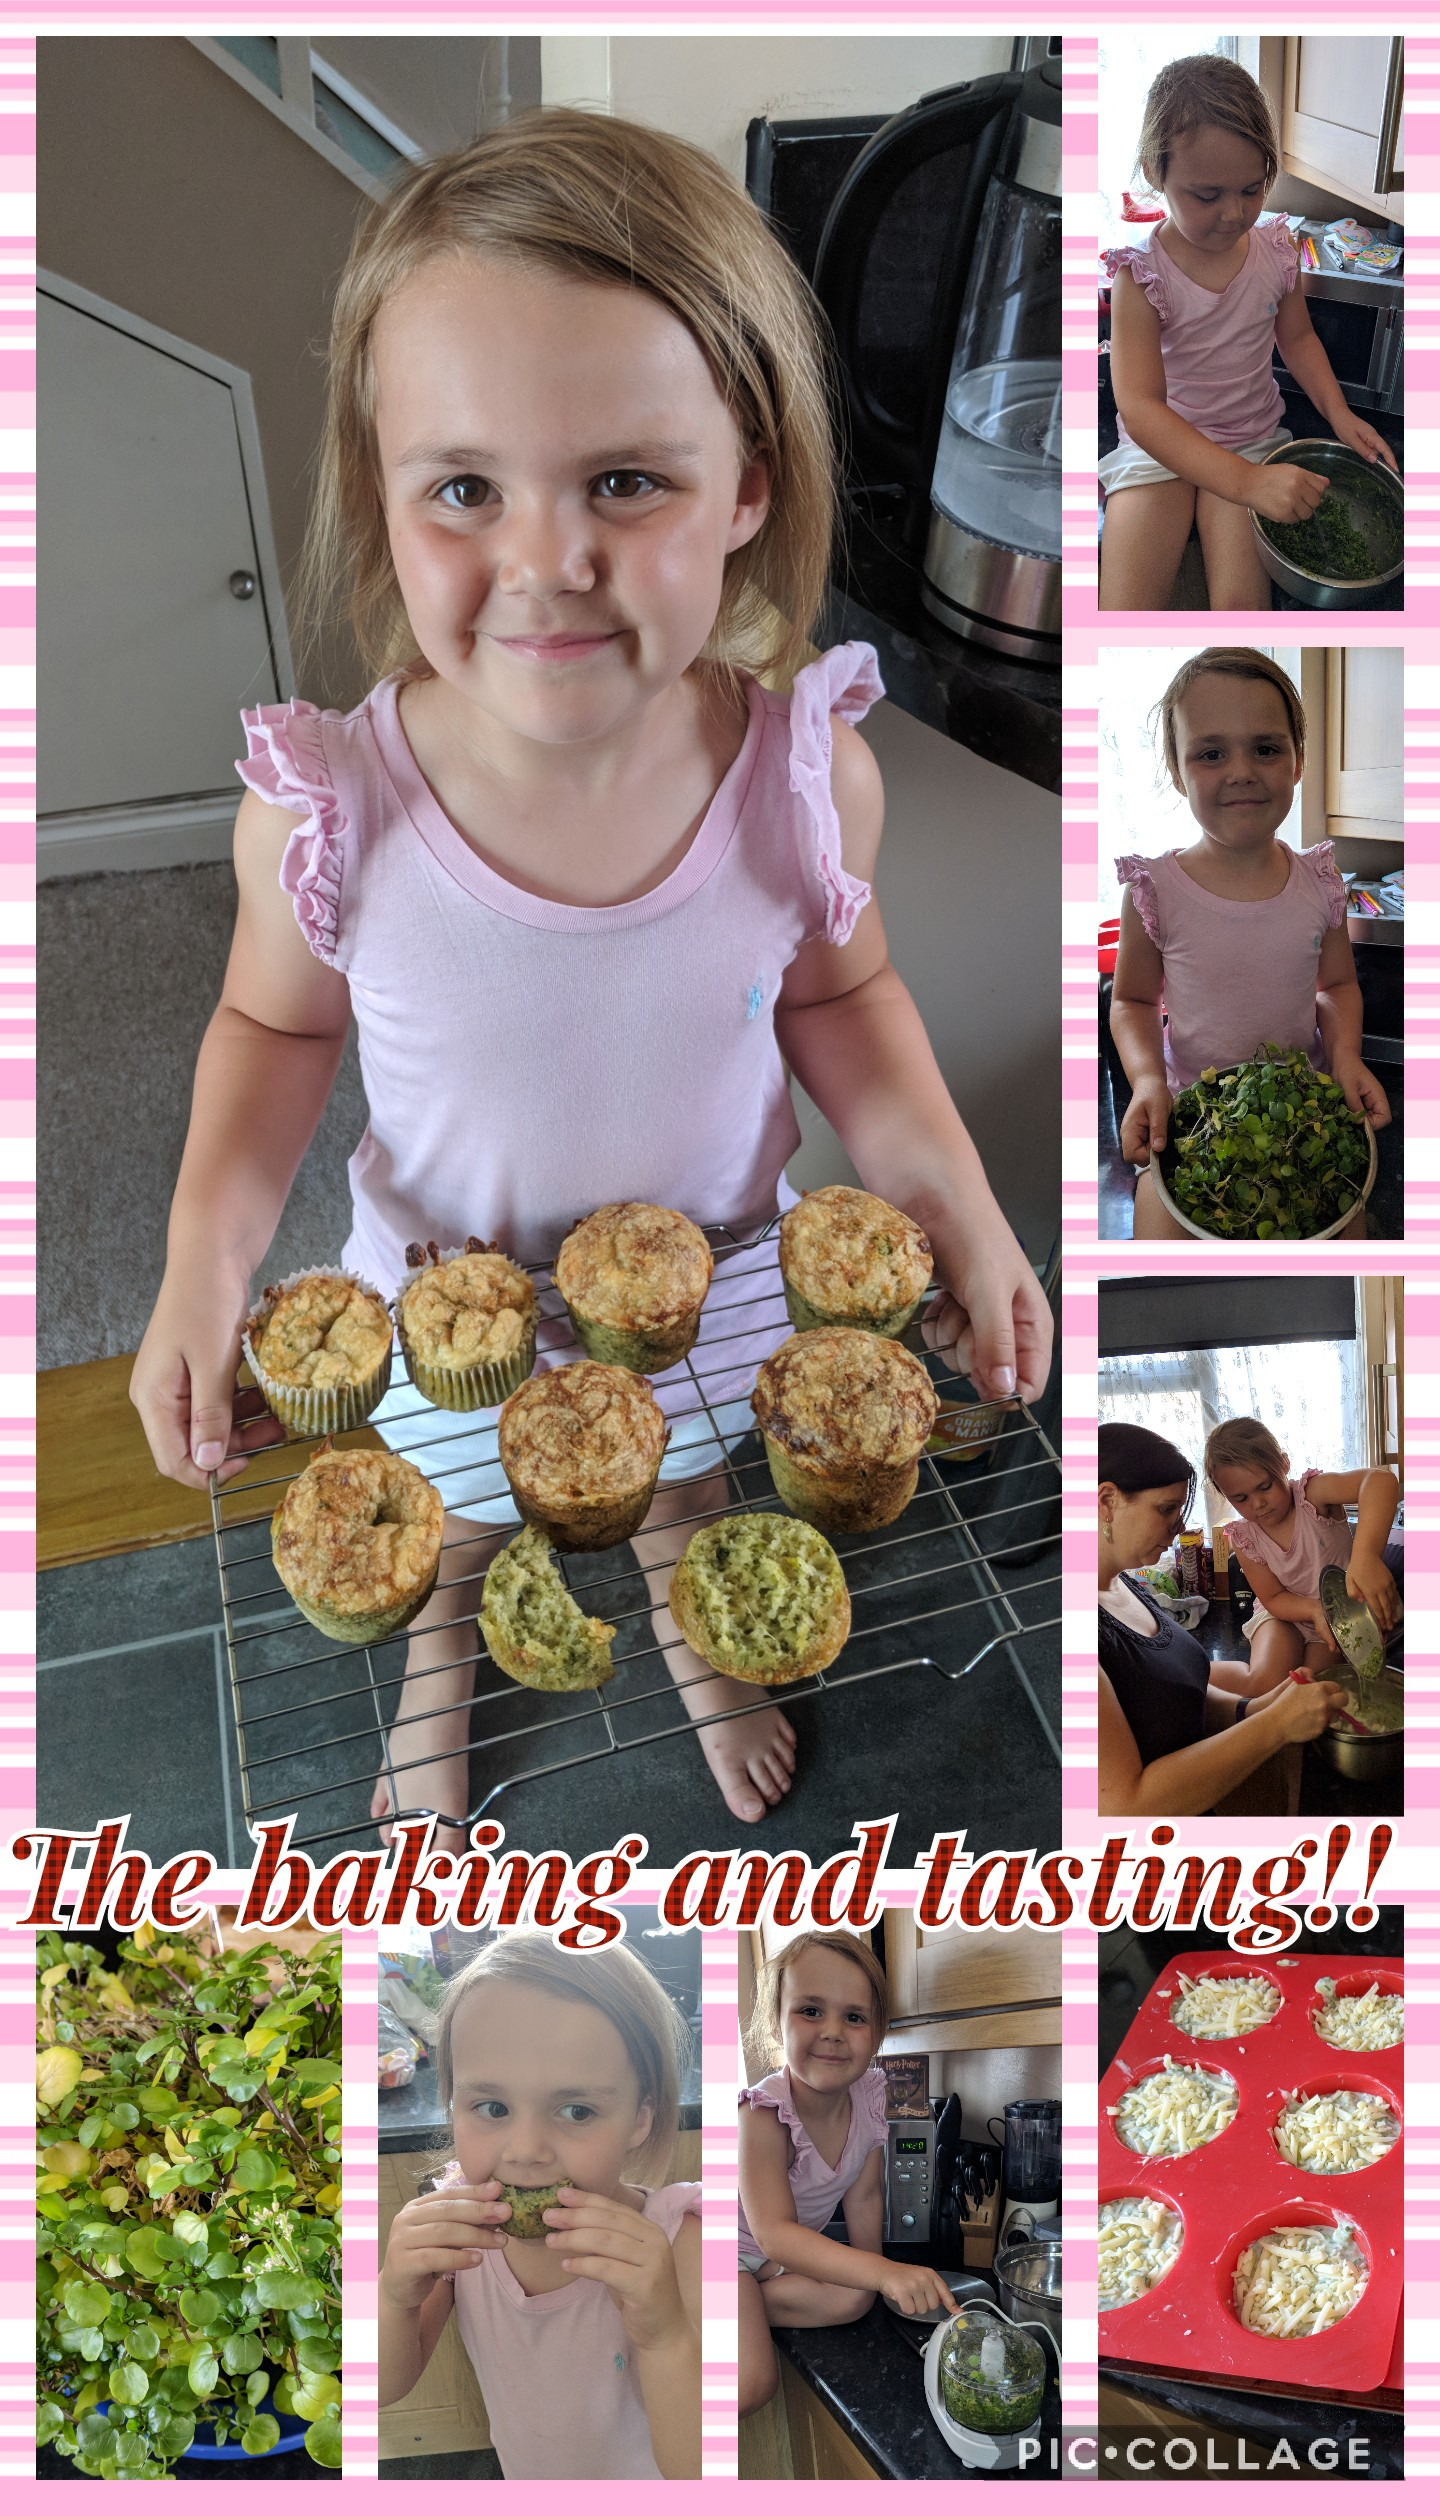 The winning watercress and cheese muffins, they look delicious.